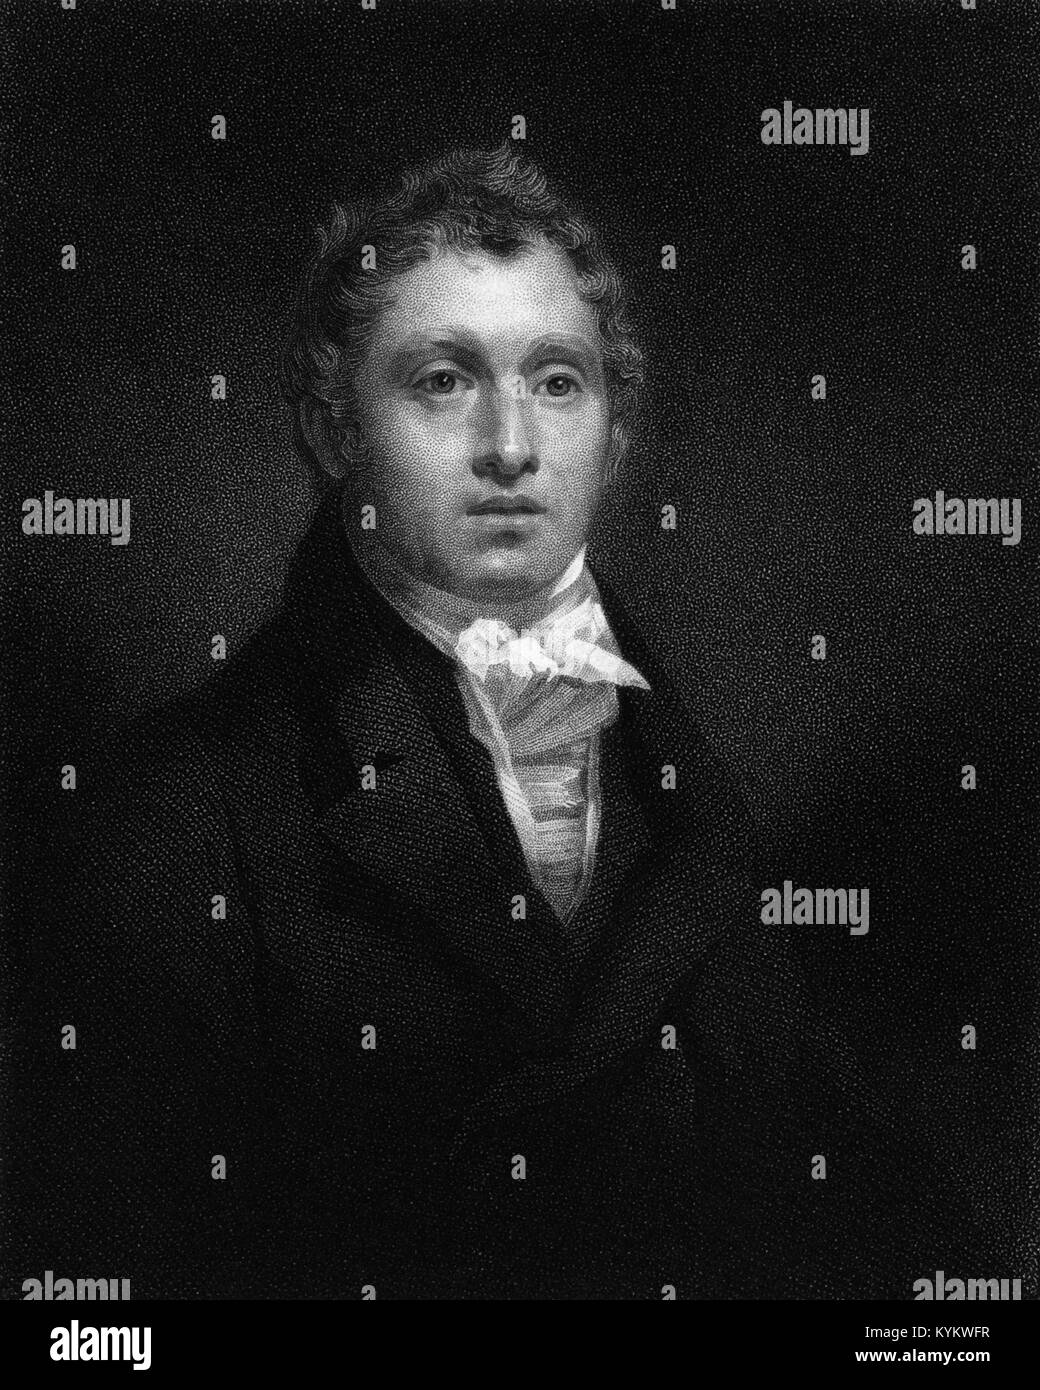 Sir David Brewster KH PRSE FRS FSA FSSA MICE (1781-1868) was a British physicist, mathematician, astronomer, inventor, - Stock Image